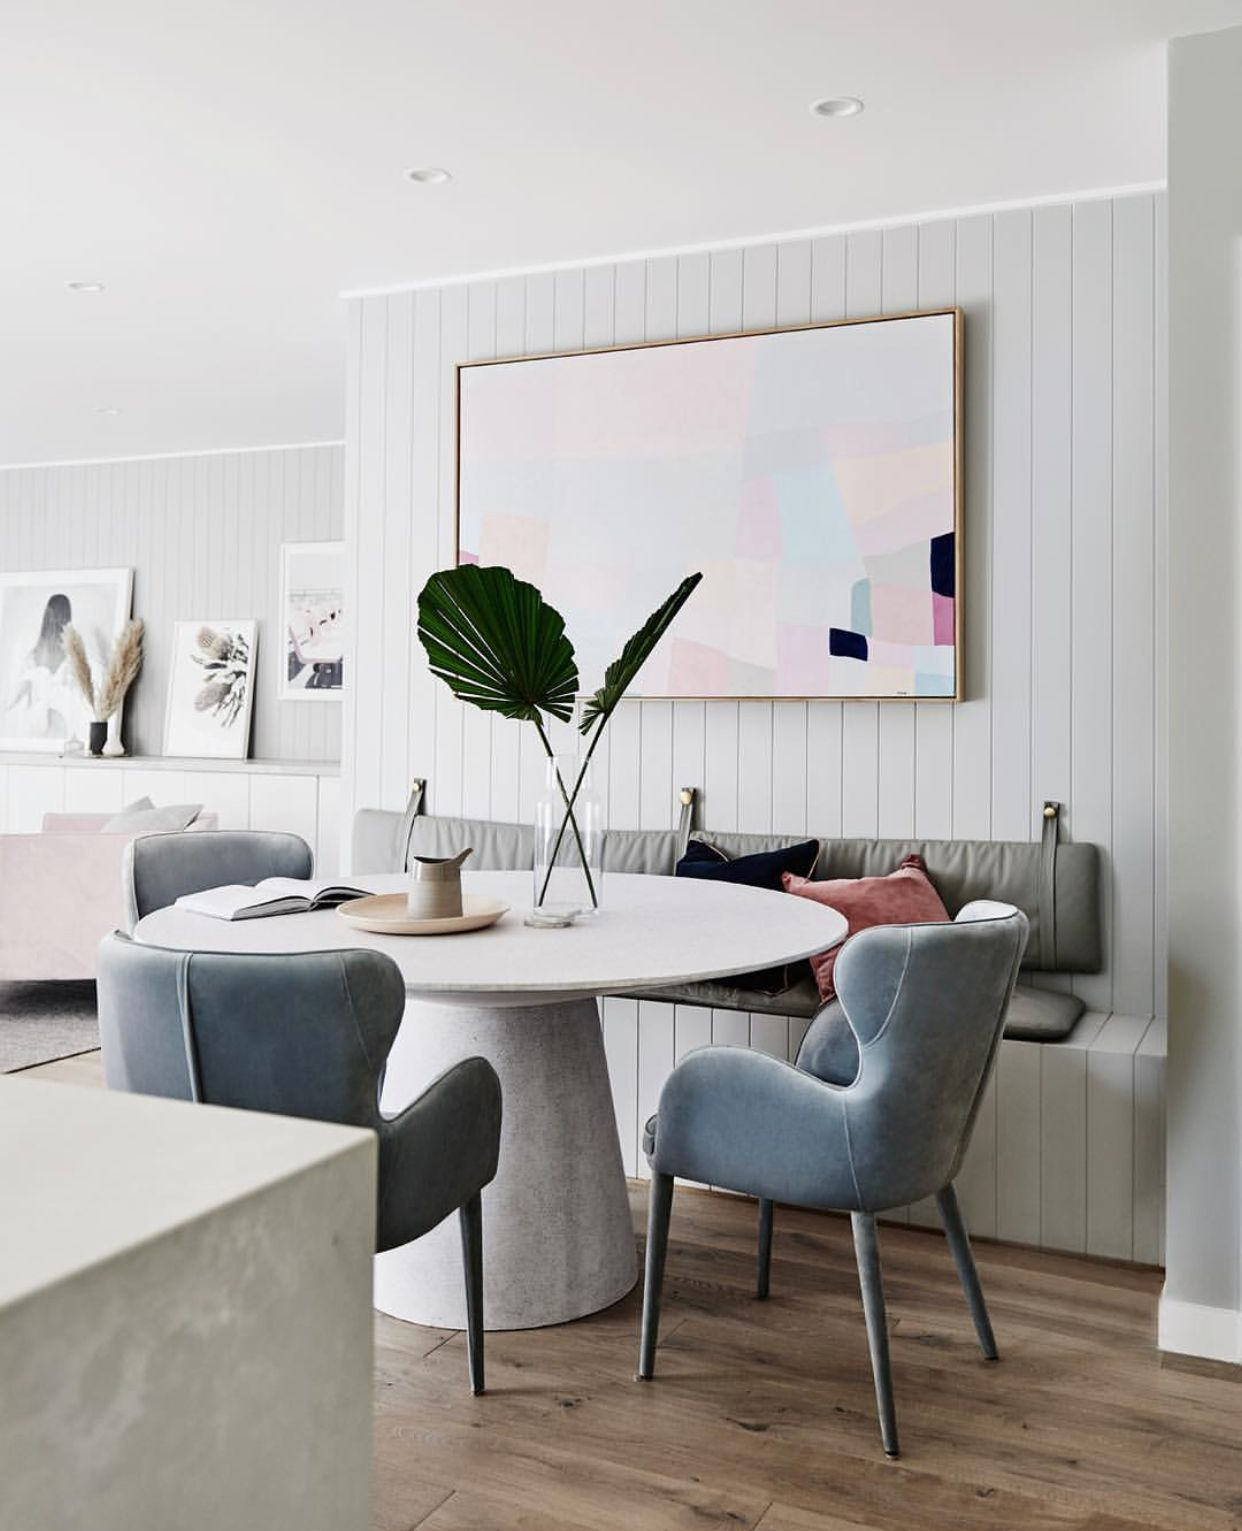 Pin By Eniko Veres On K I T C H E N D I N I N G Scandinavian Dining Room Dining Table With Bench Dining Room Design